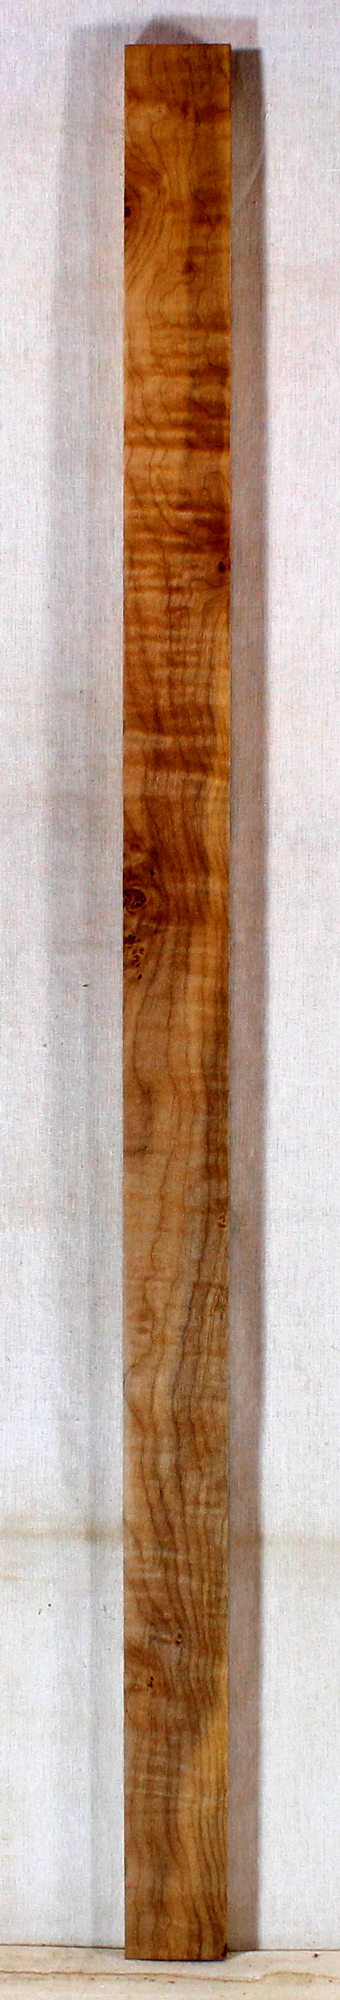 Maple Dulcimer Finger Board (BK93)